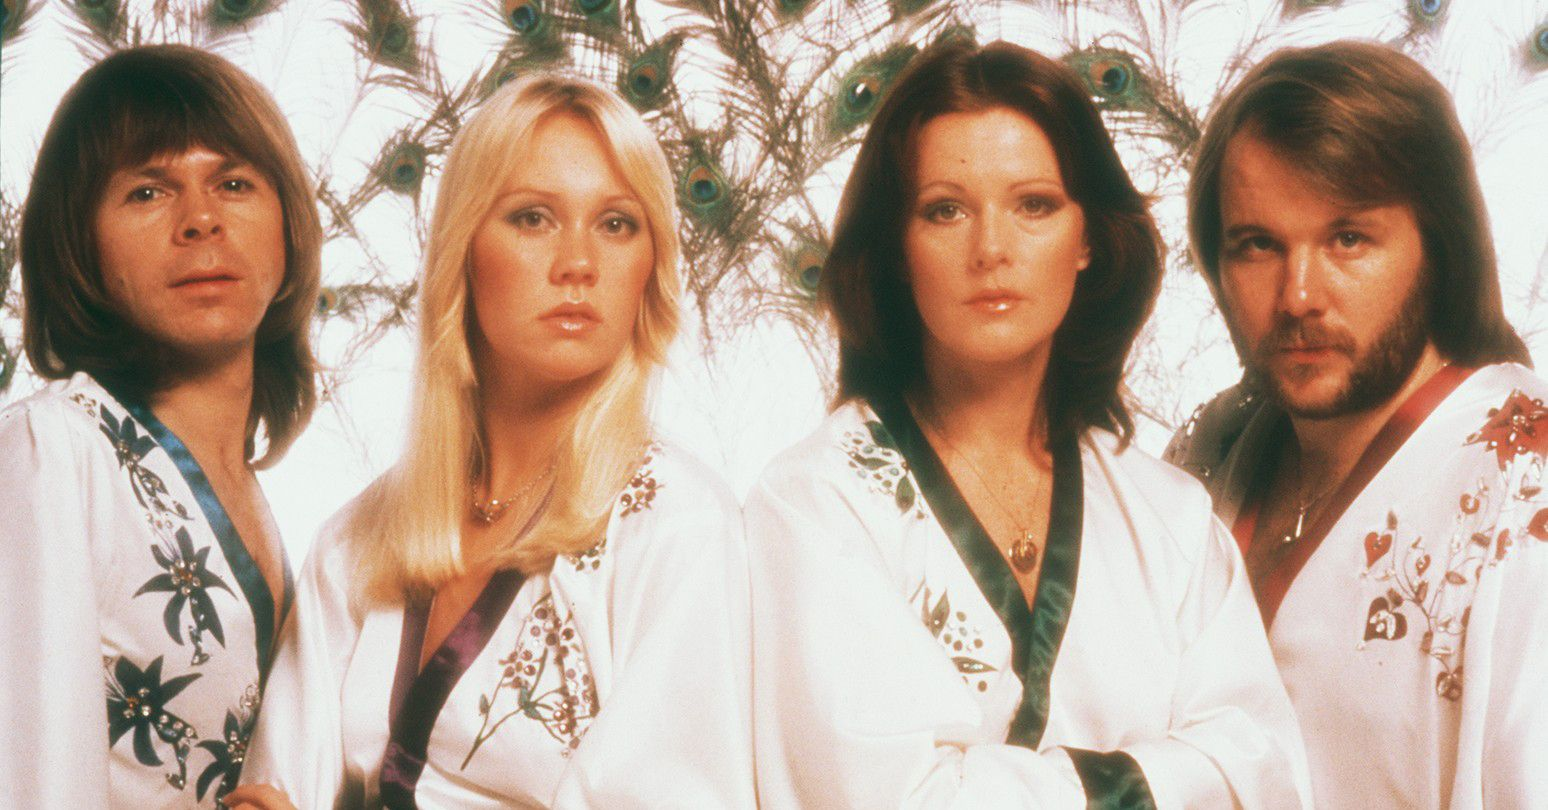 Little Known Facts About ABBA's 1973 Debut Album 'Ring Ring'